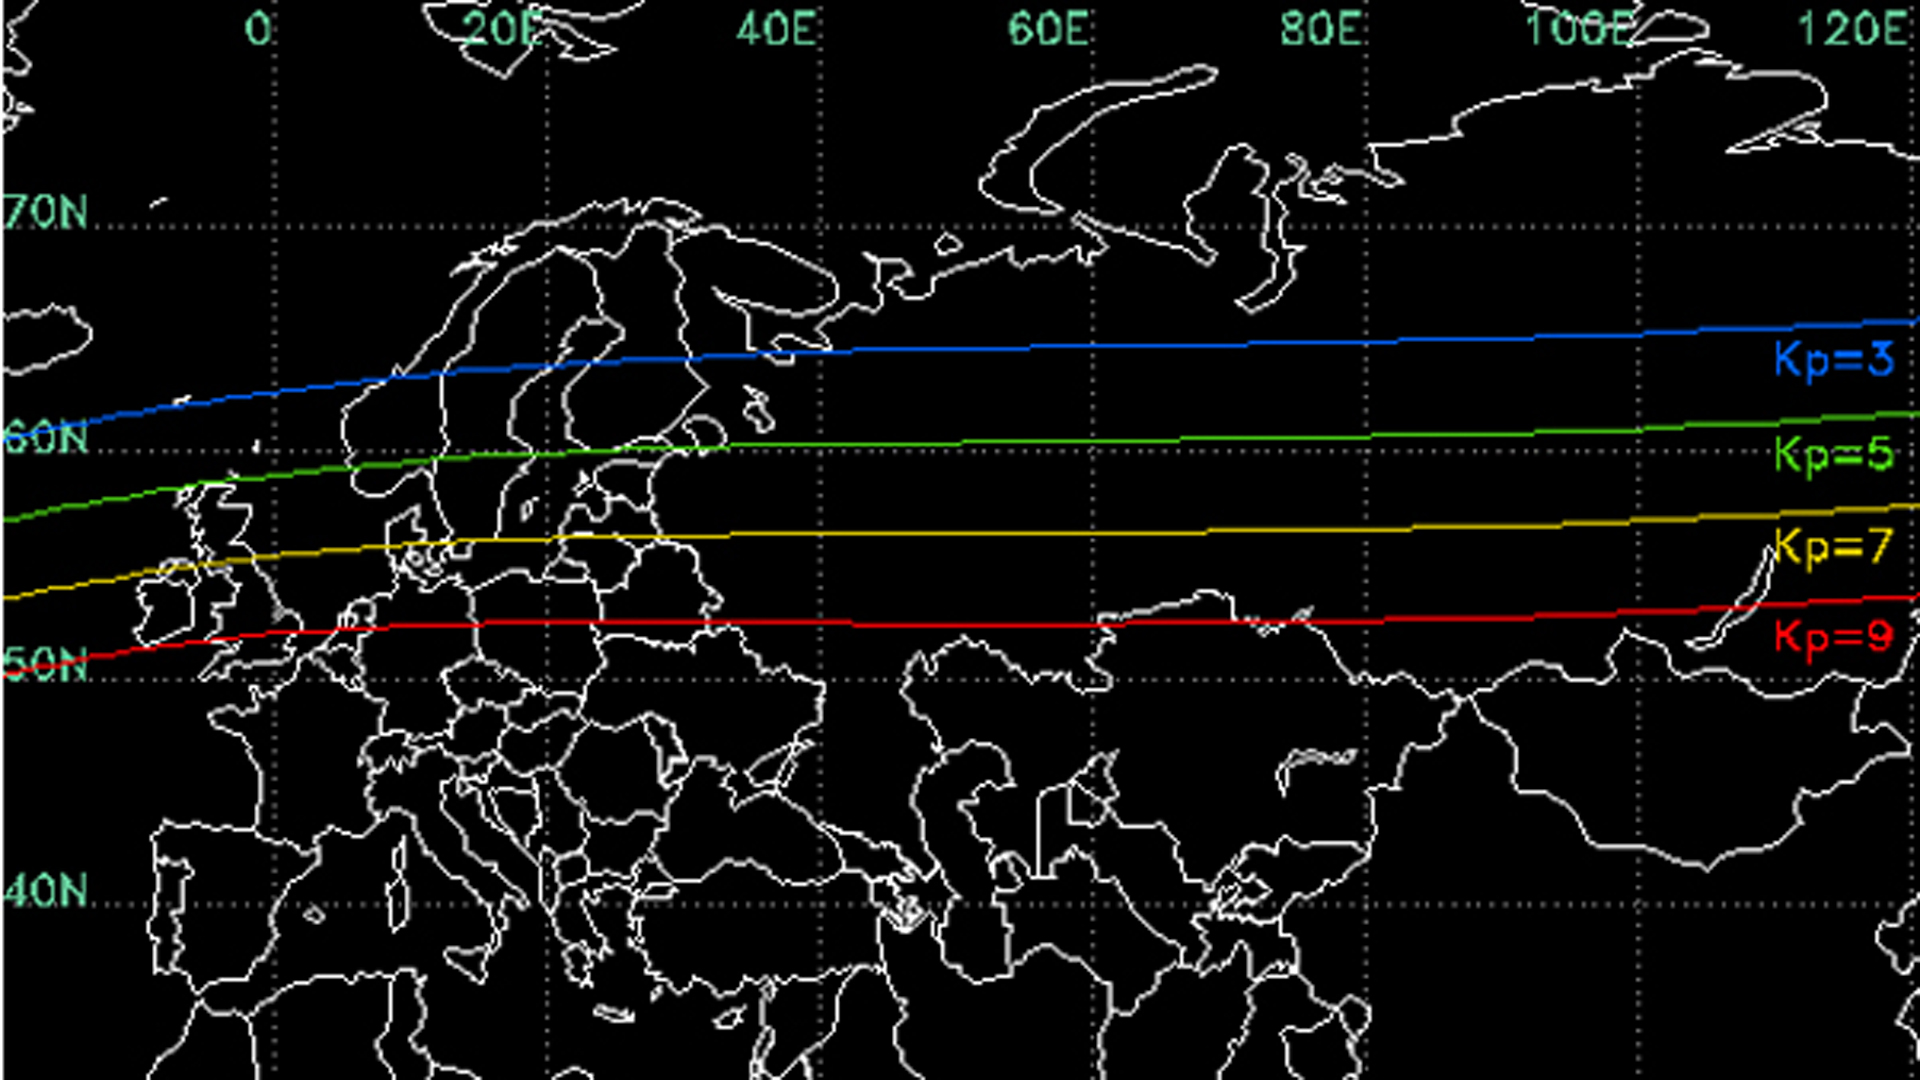 Geomagnetic storm Kp number map